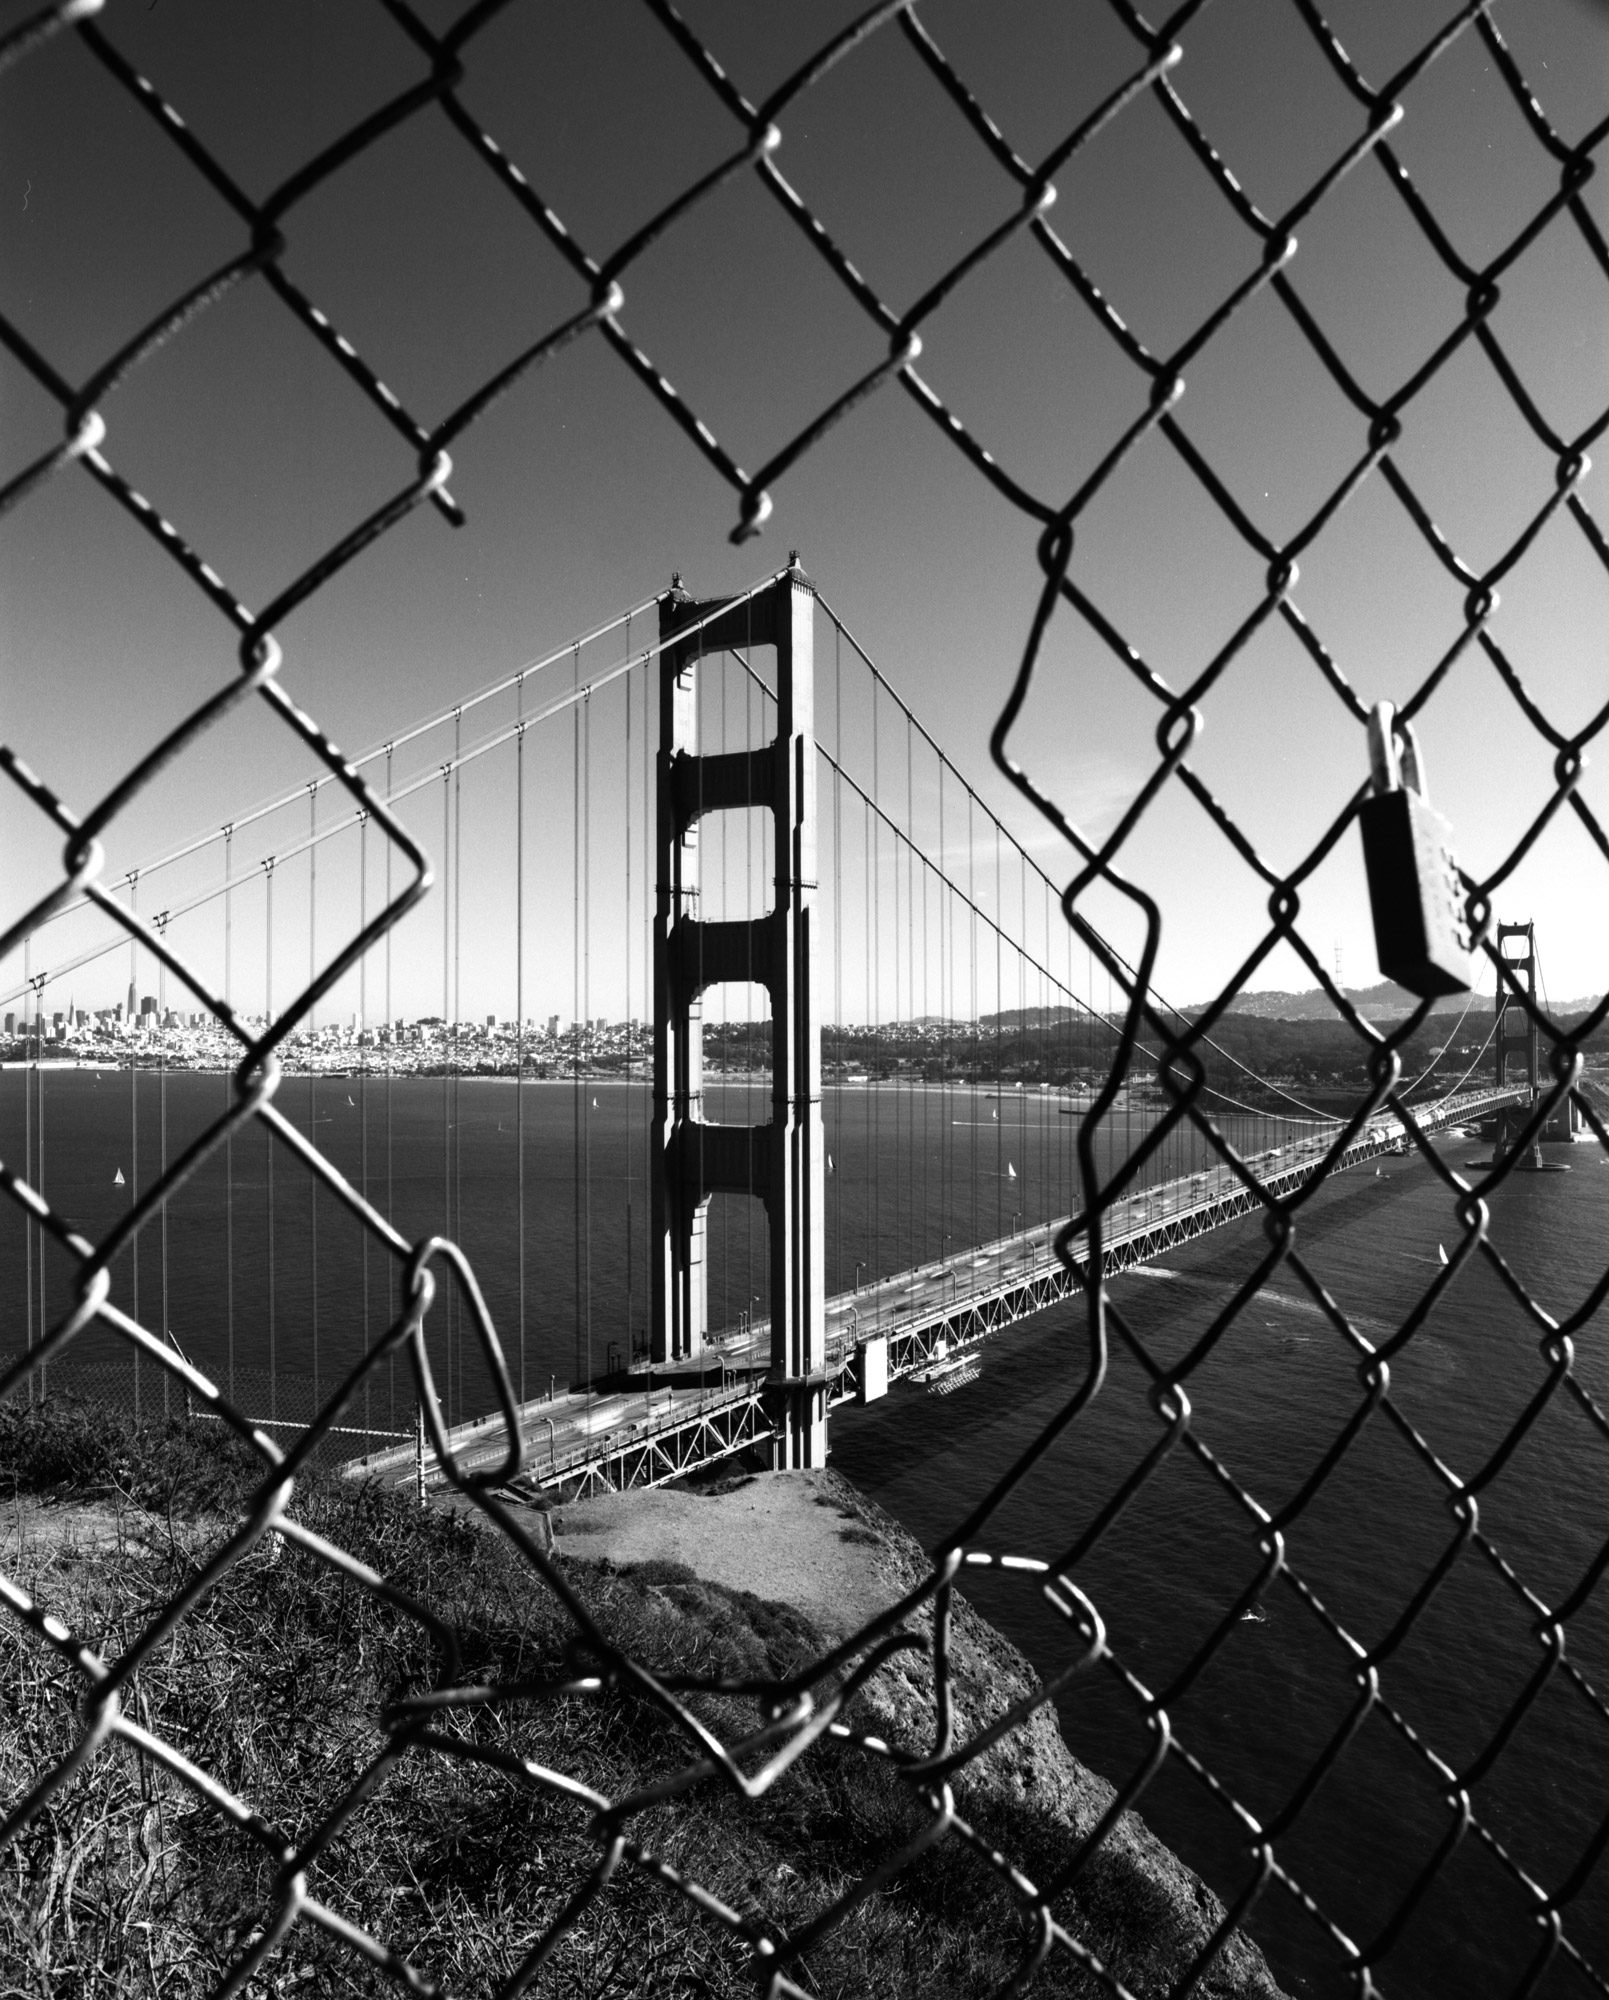 Golden gate bridge, framed through a gap in a wire fence. Shot on ILFORD Delta 100 black and white film by Sergio Lopez